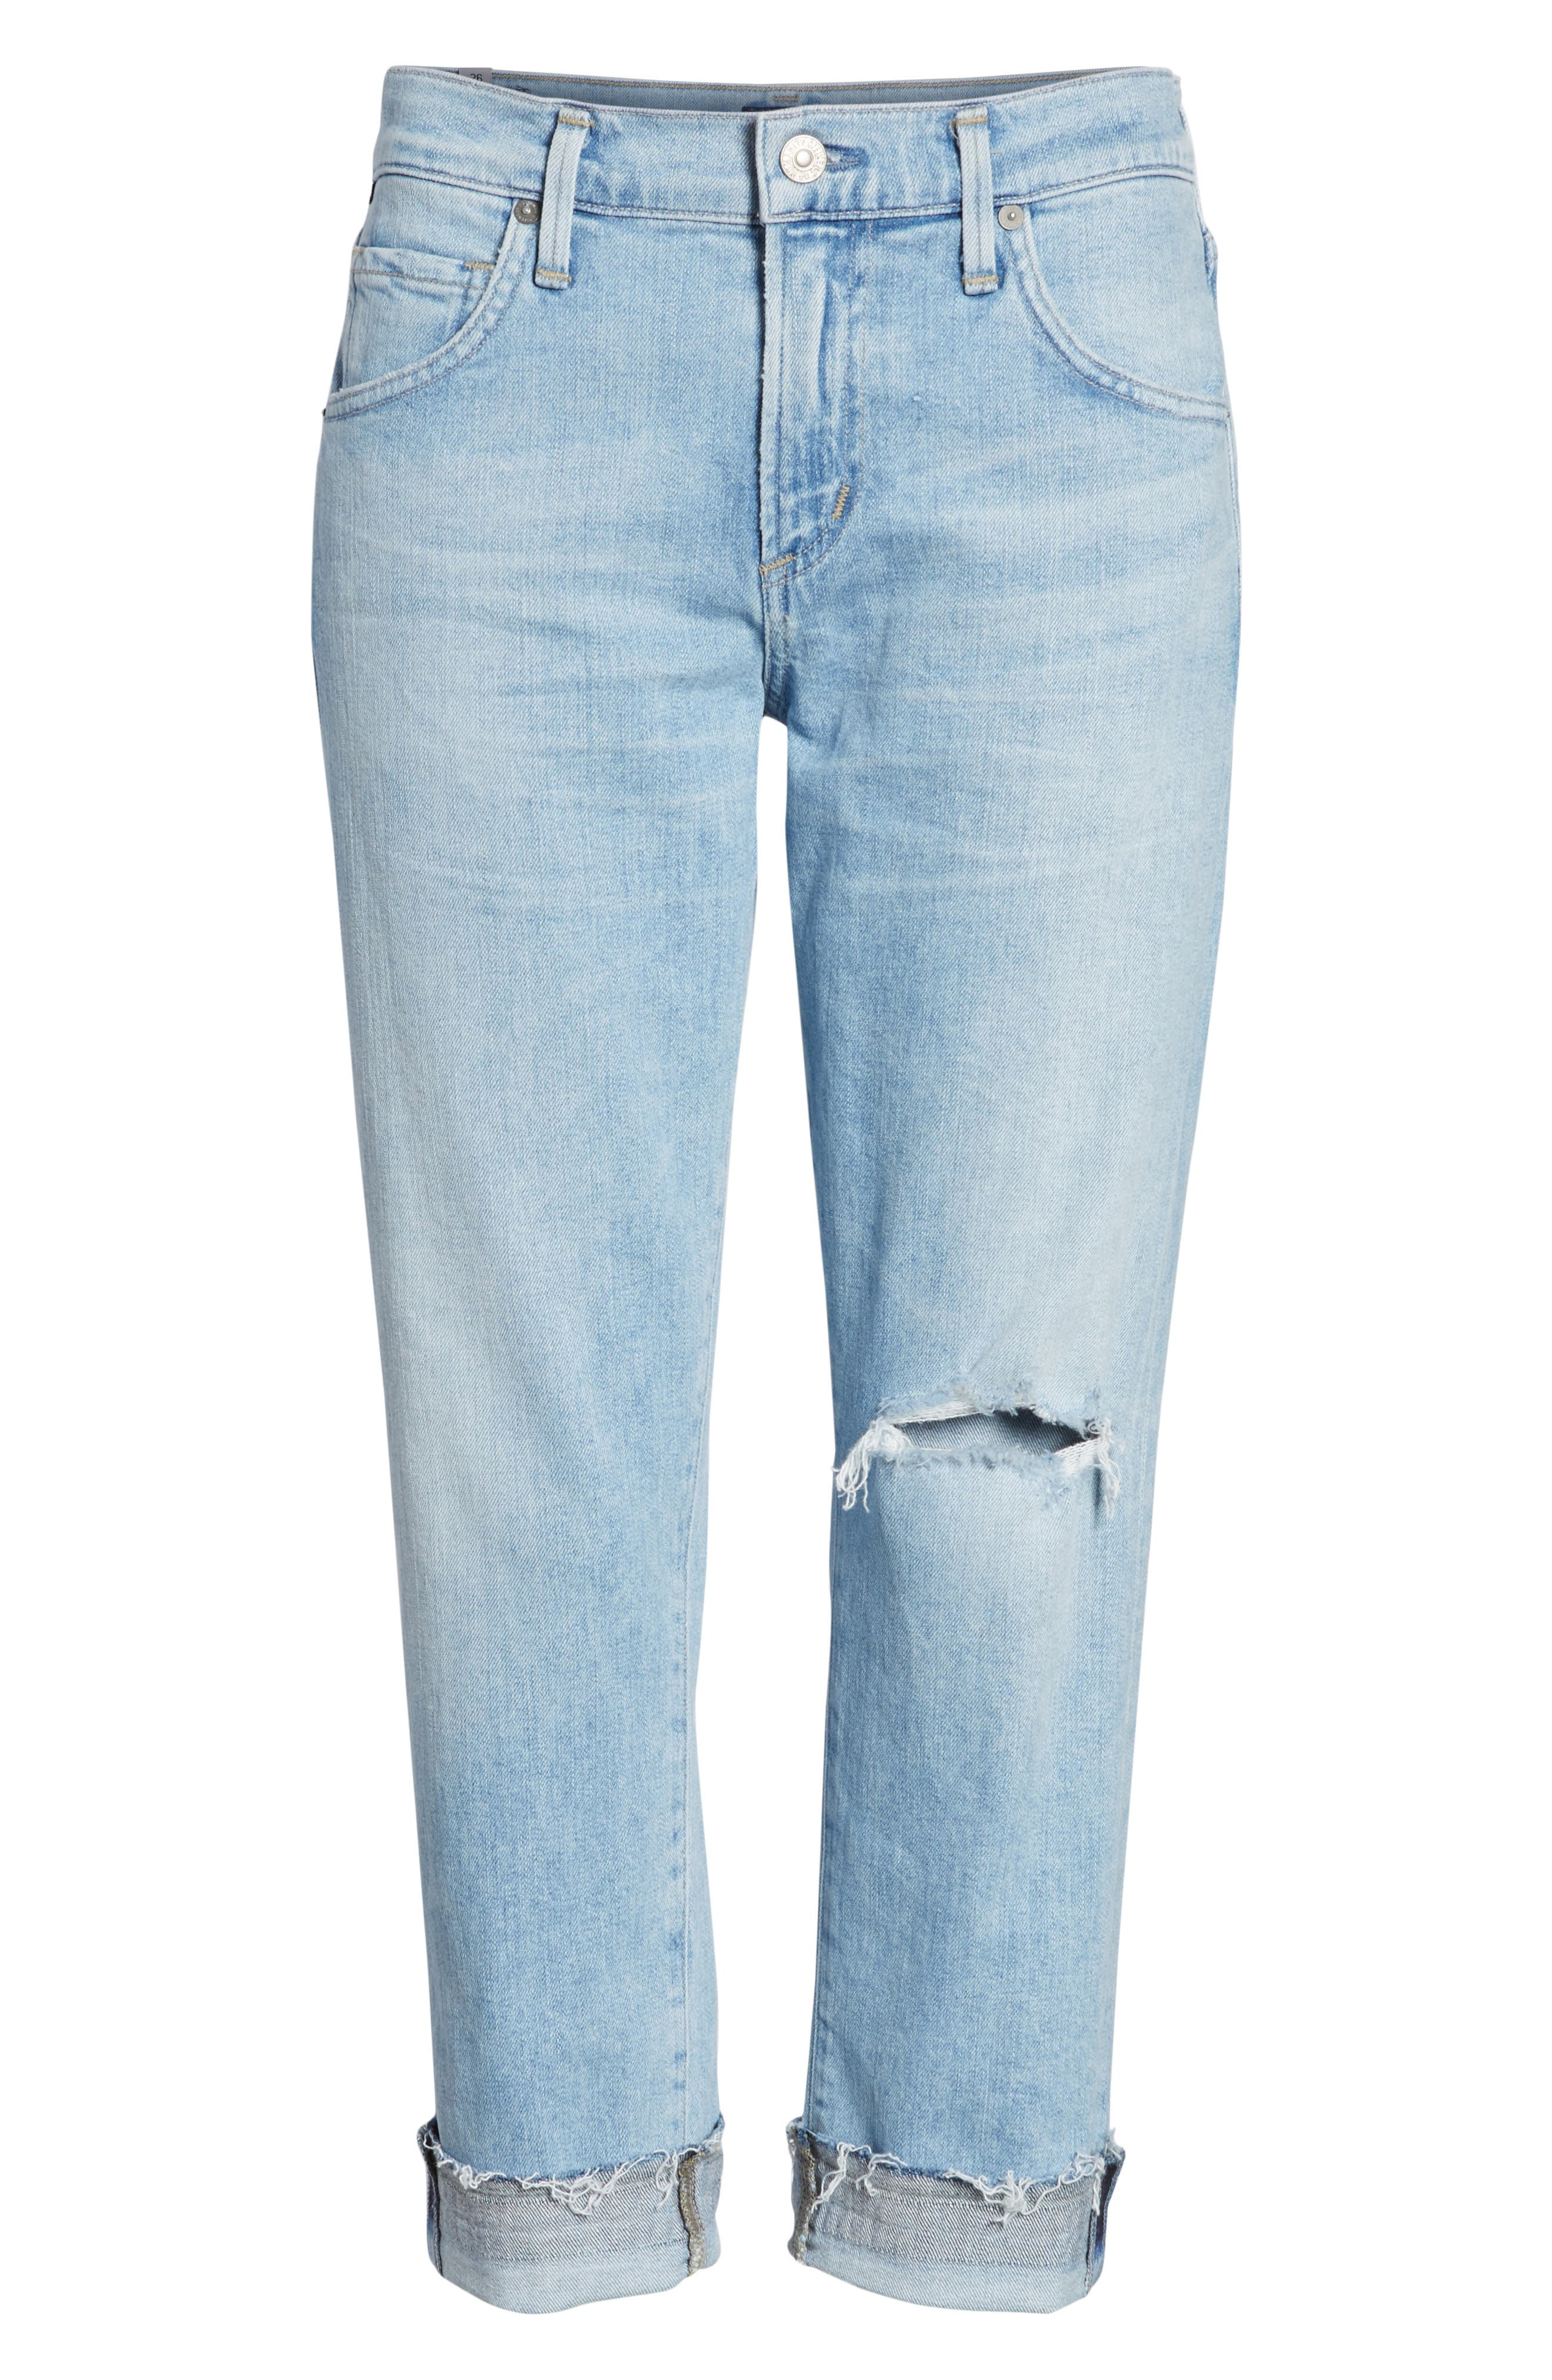 Emerson Ripped Crop Slim Boyfriend Jeans,                             Alternate thumbnail 7, color,                             Rising